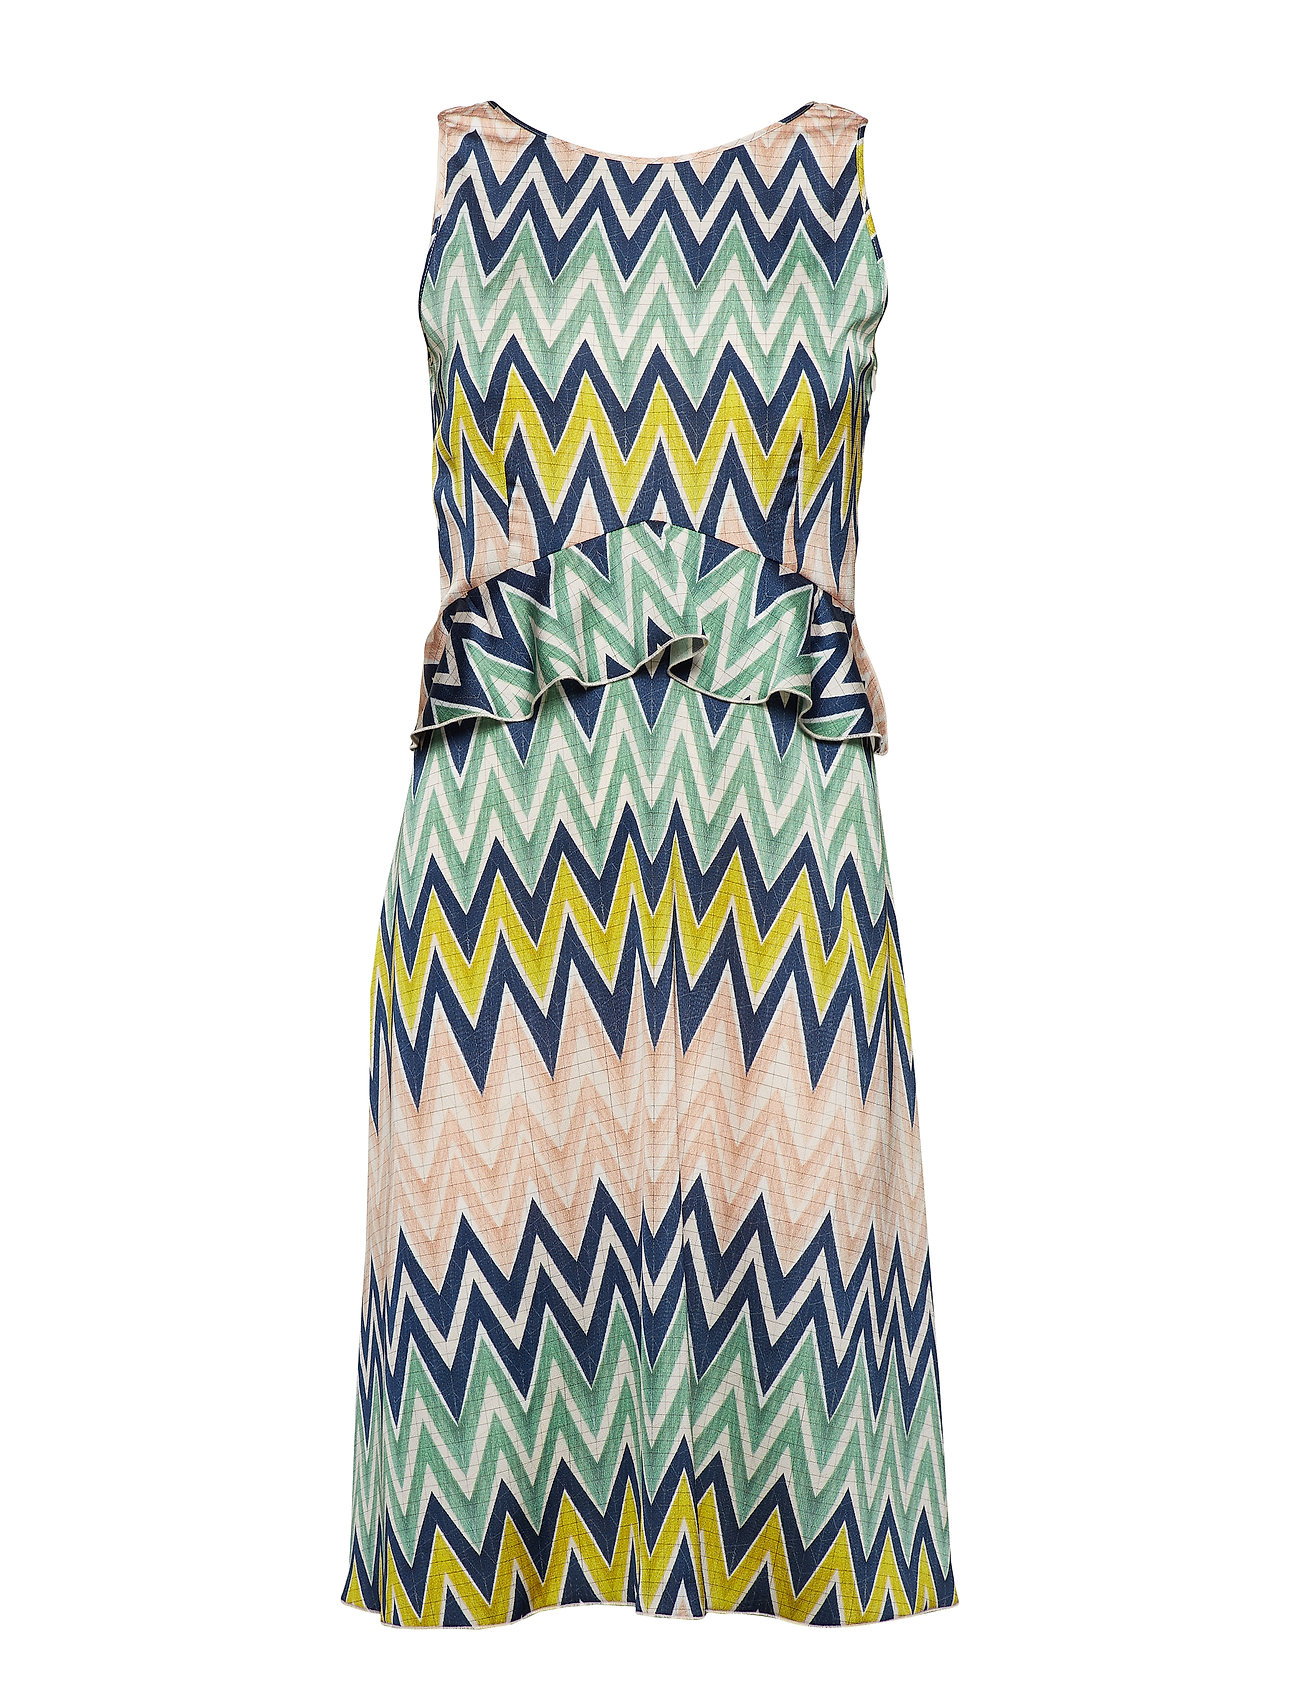 M Missoni M MISSONI-SLEEVES DRESS - MULTI